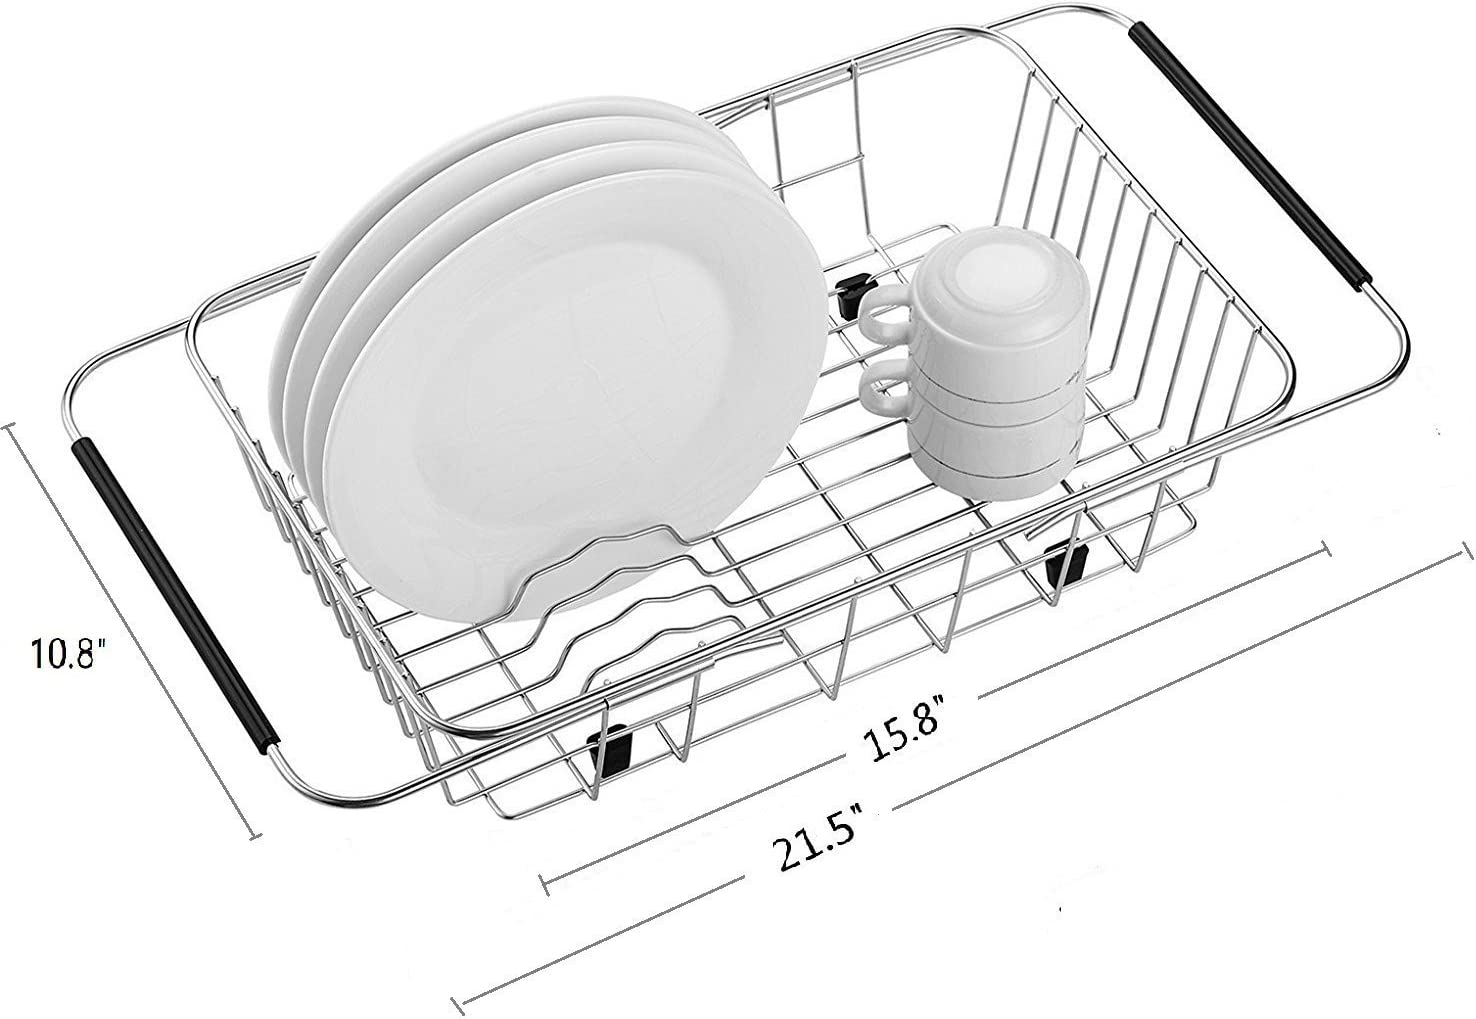 Expandable Dish Drying Rack, Dish Drainer On Counter,Over Sink or In Sink Dishes Holder,Rust Proof Stainless Steel